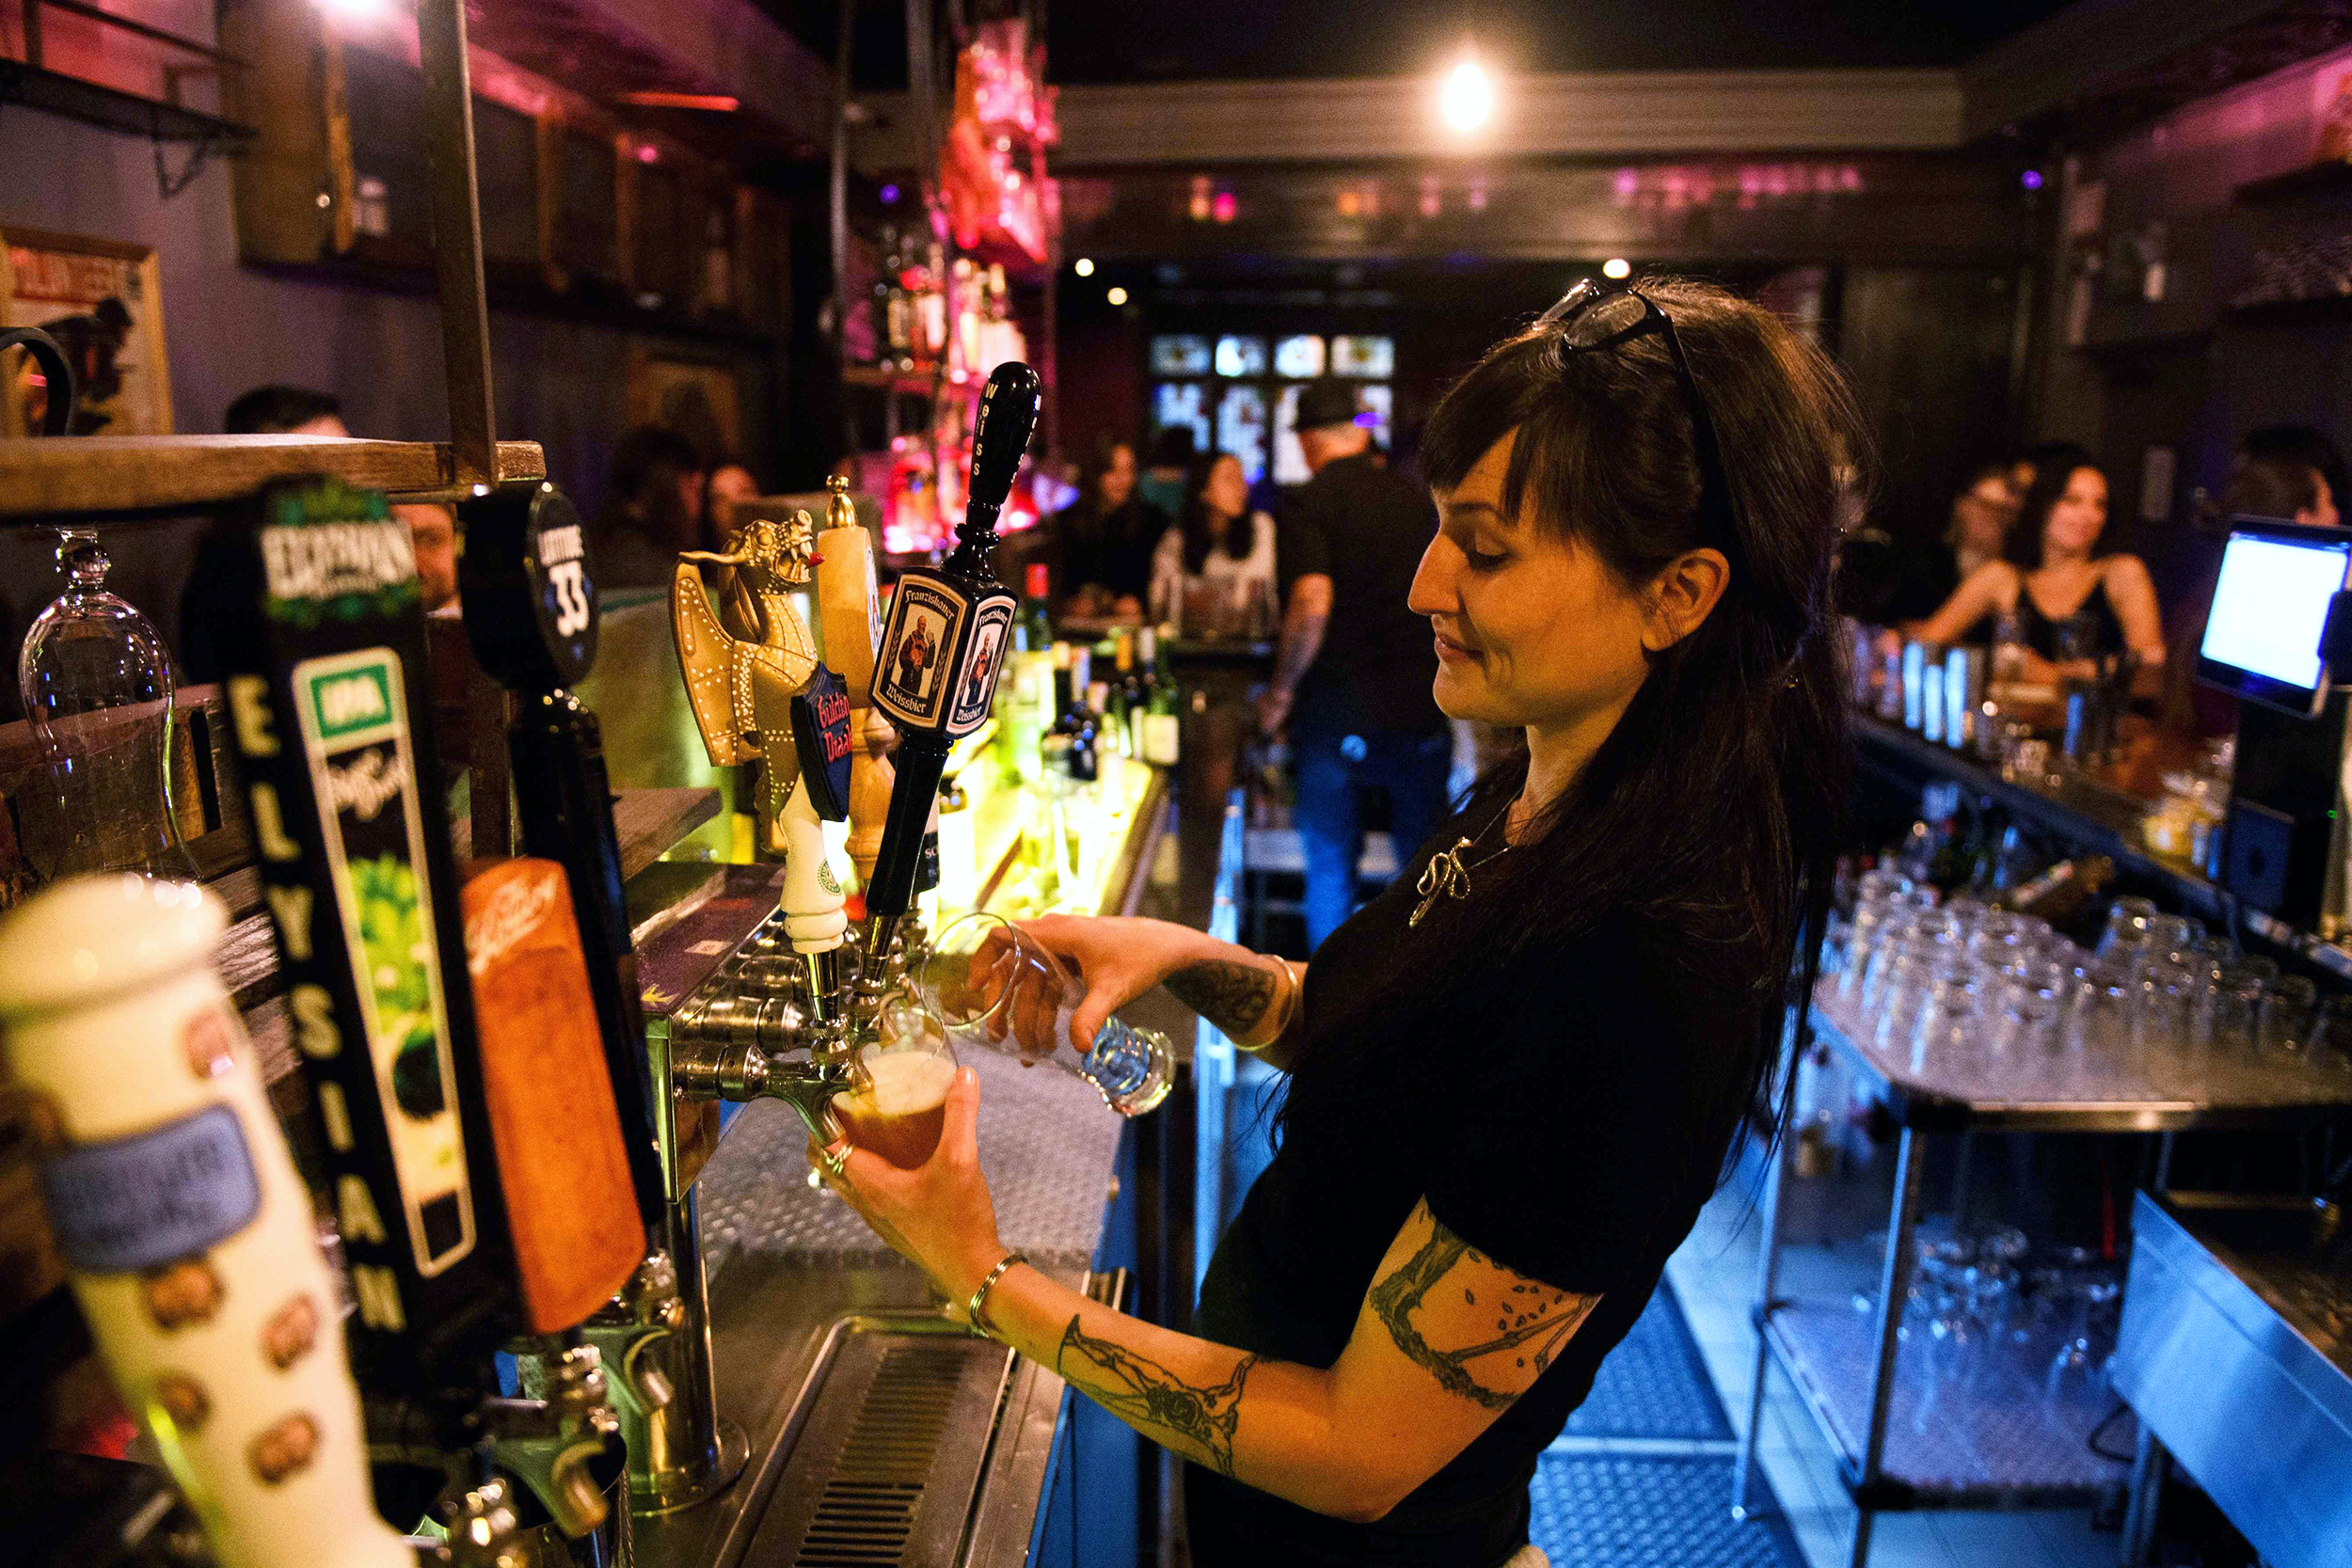 Los Angeles County to require vaccination proof at bars, large events